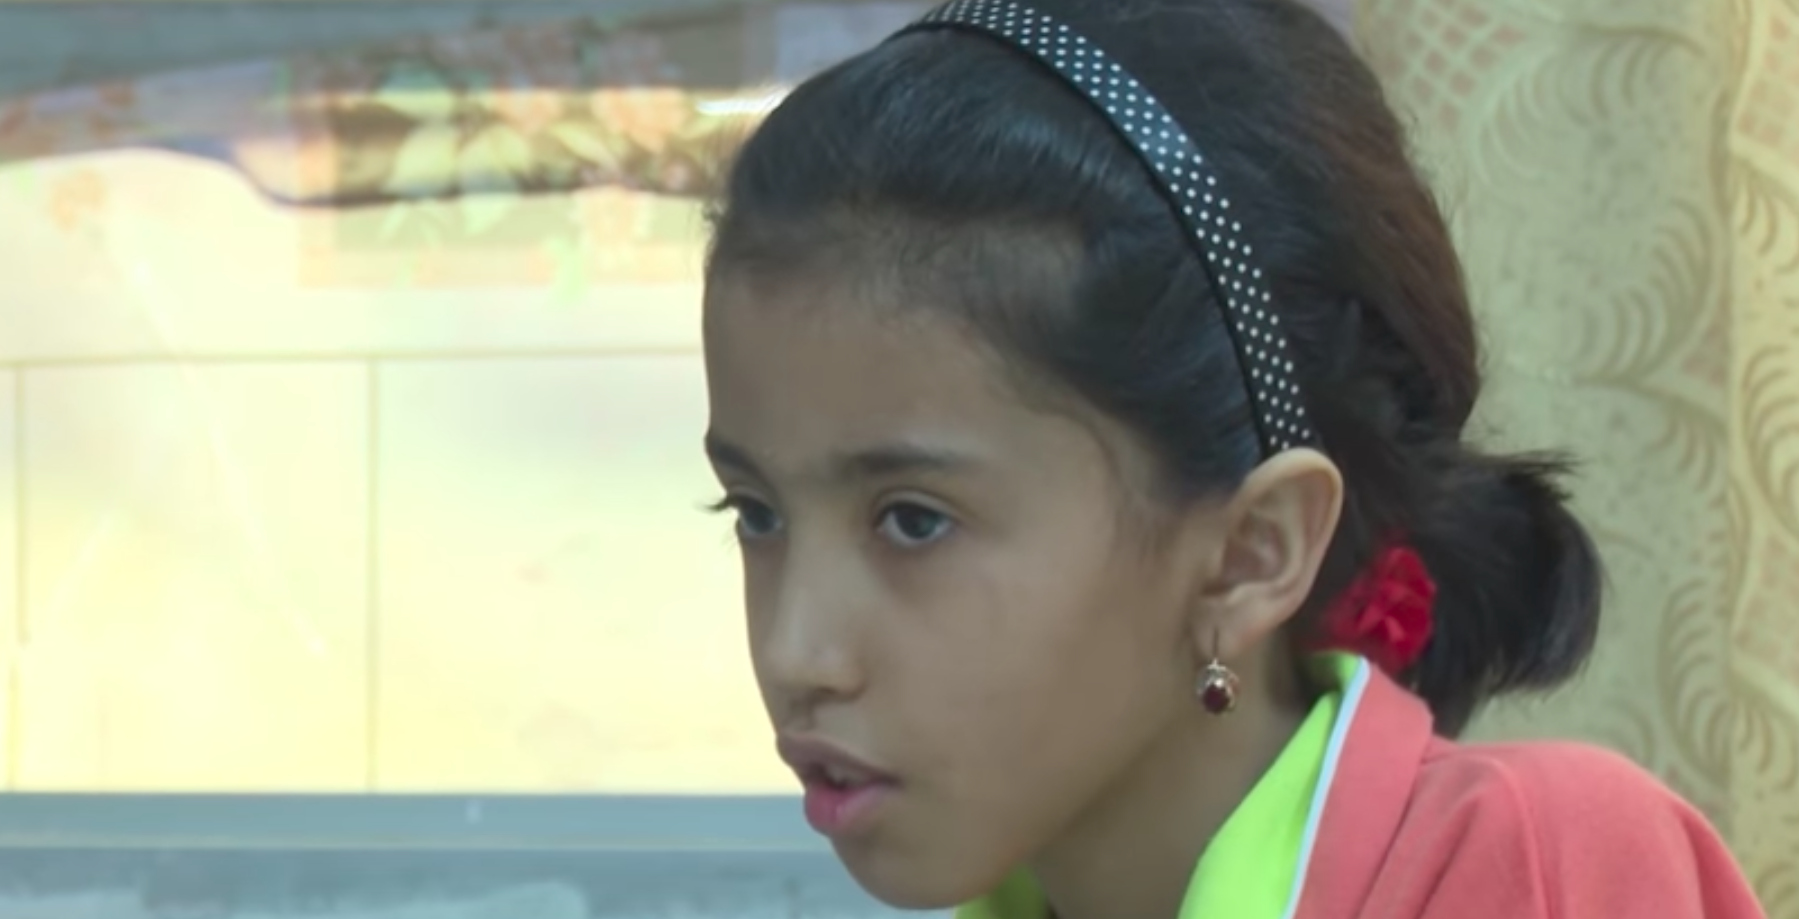 Authorities try to ease plight of Tajik children stranded in Syria, Iraq